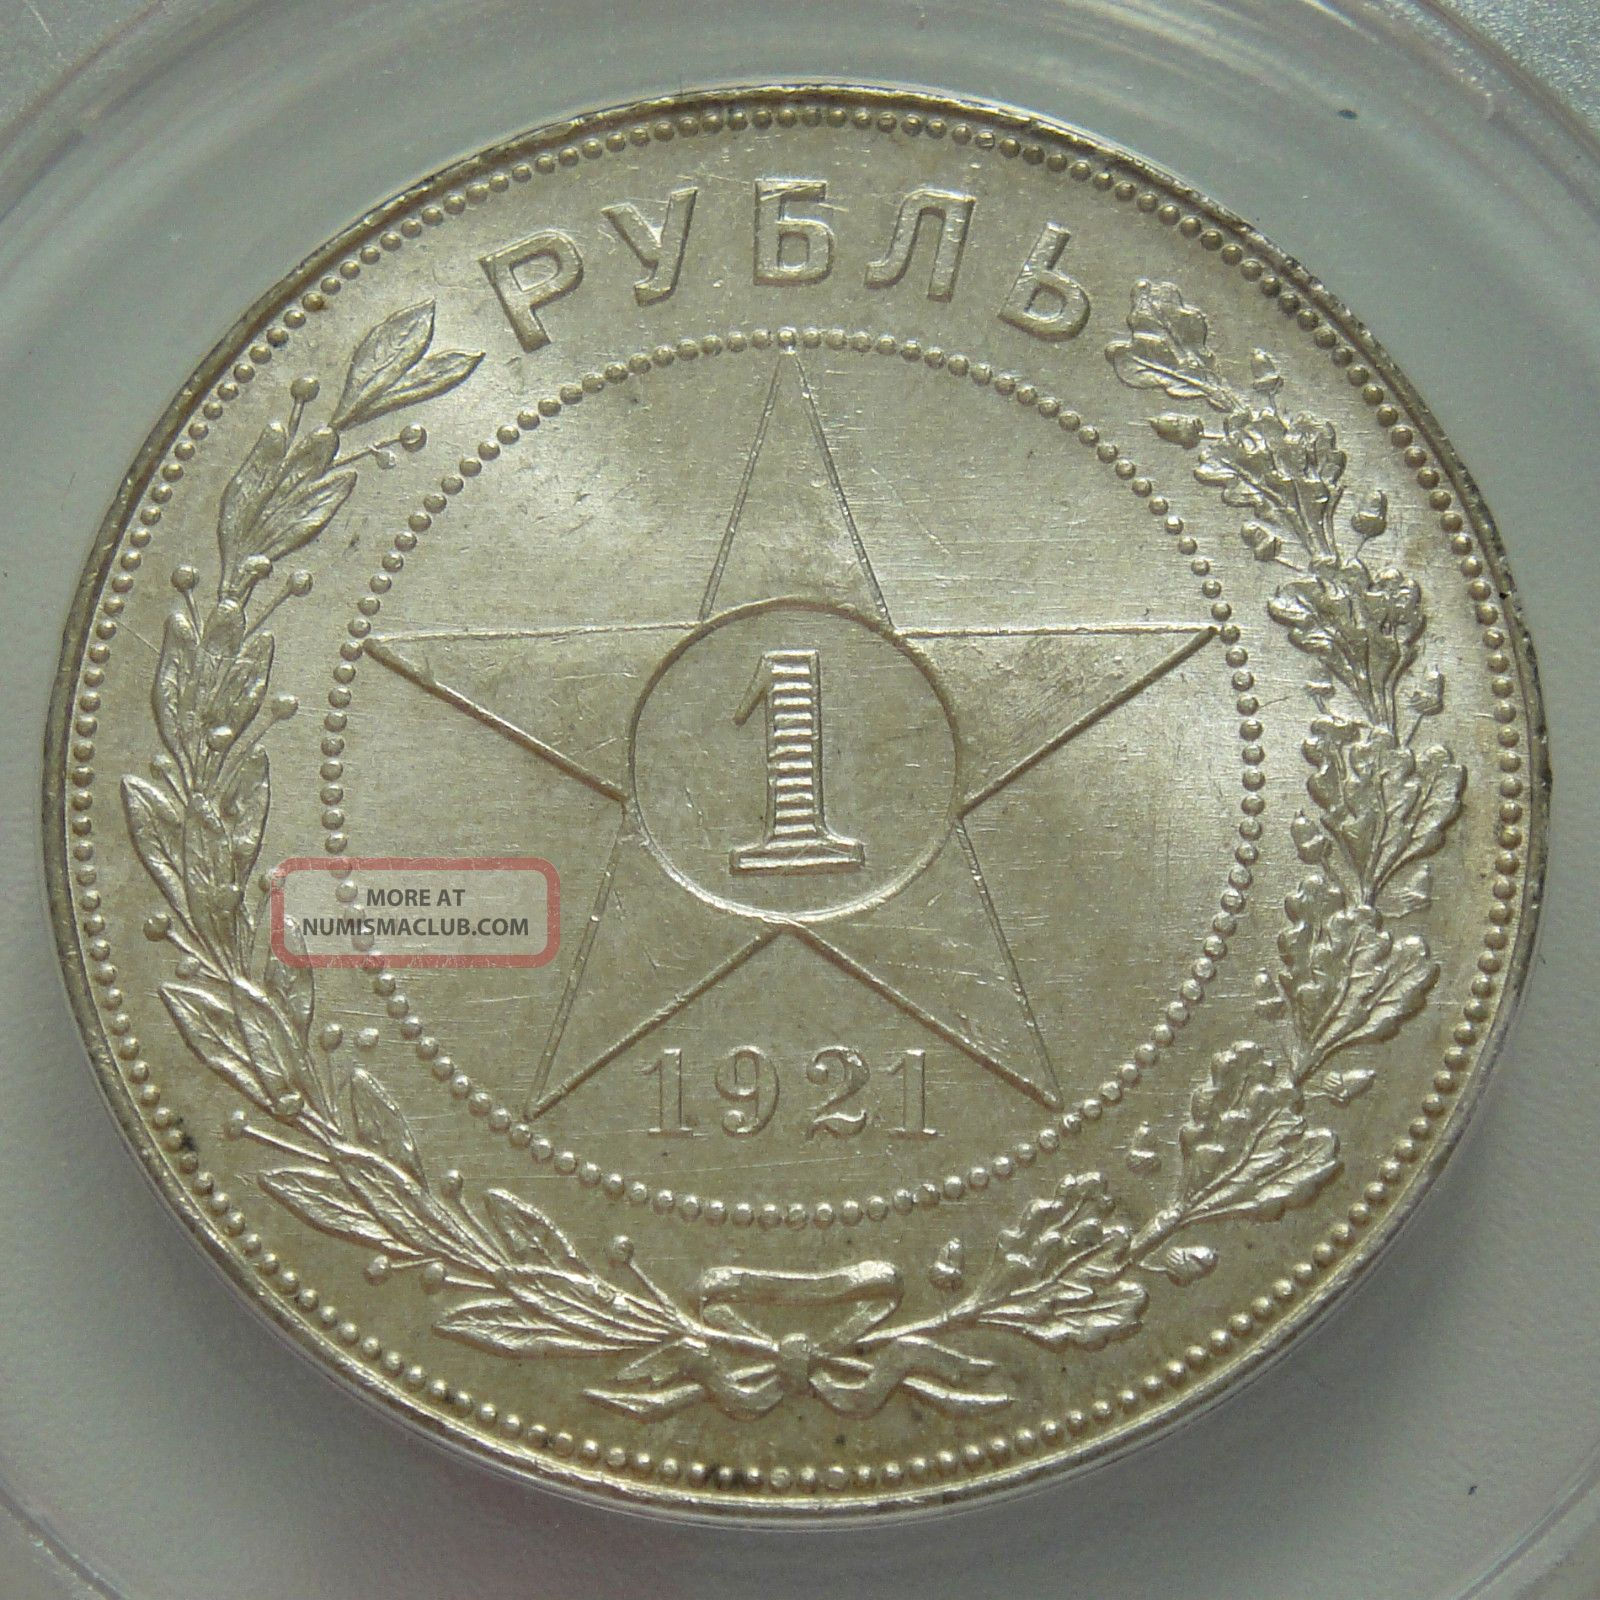 Russia Rouble 1921 Rsfsr / Russian Ruble Silver Coin Anacs Ms63 Lustrous Russia photo